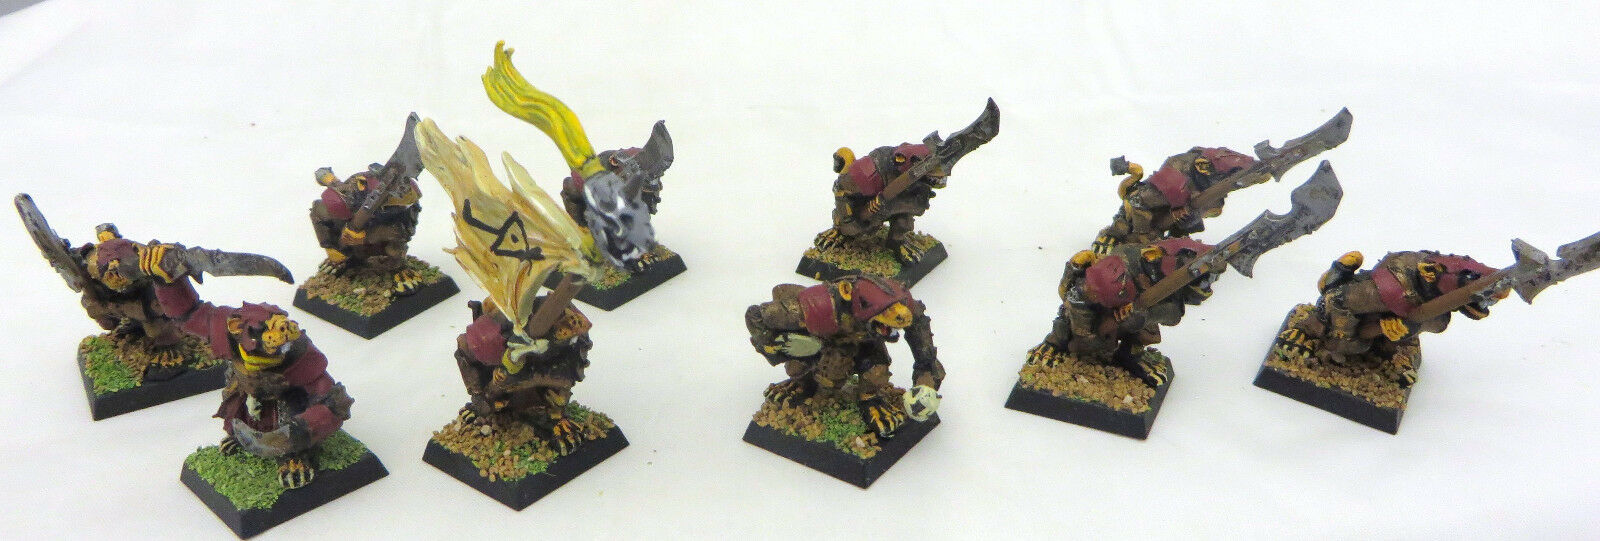 Warhammer Skaven Stormvermin painted army lot metal table ready